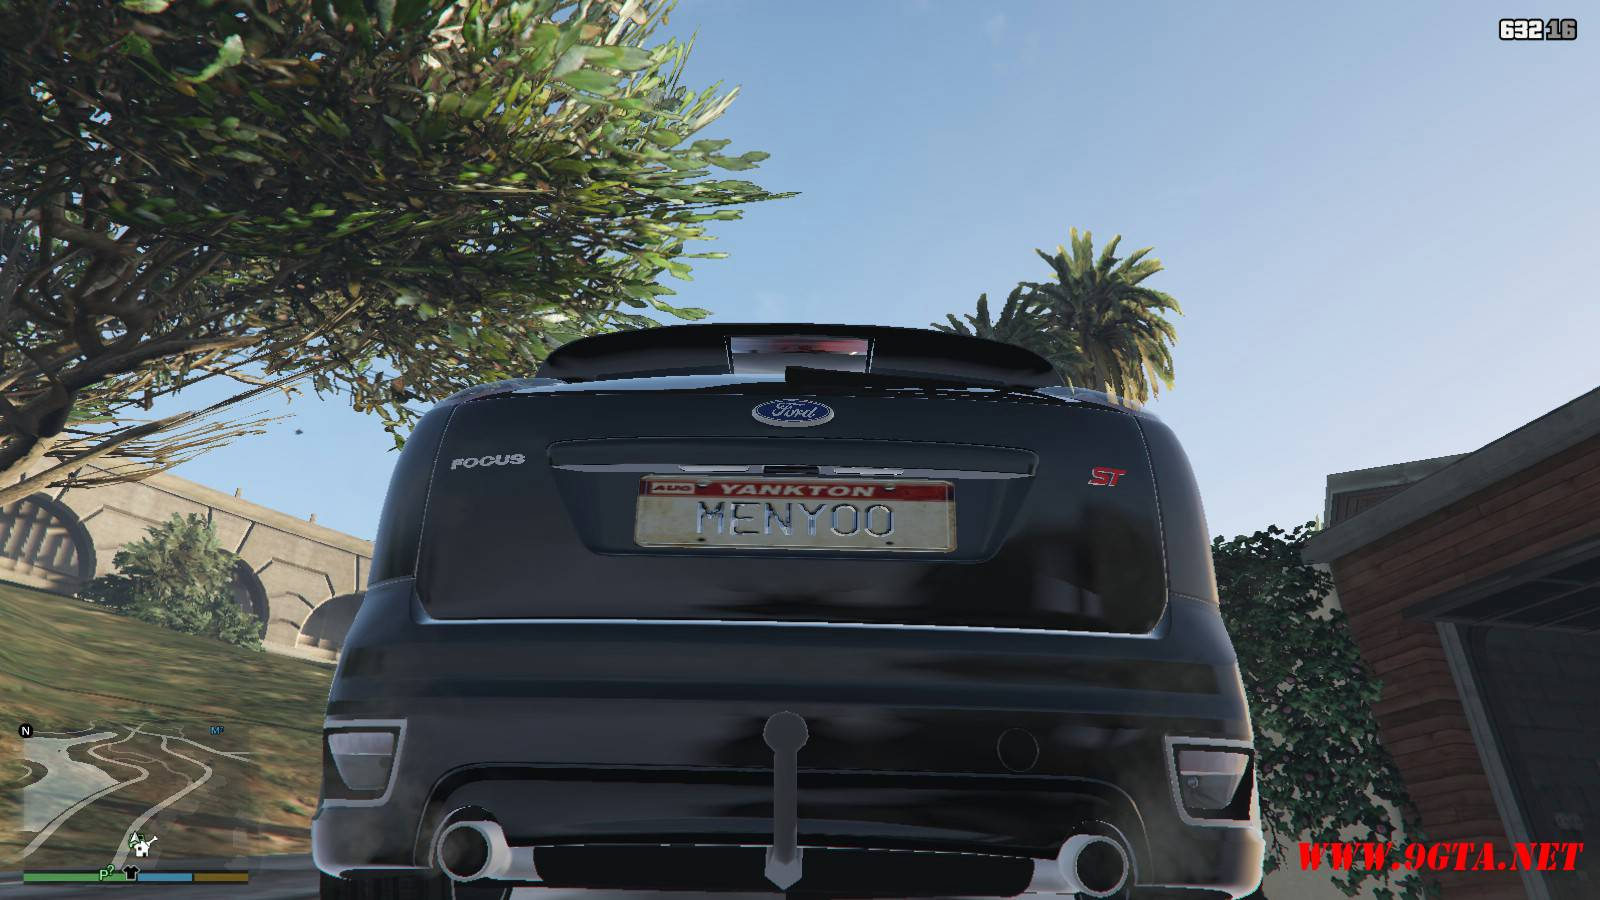 2006 Ford Focus ST Mod For GTA5 (6)